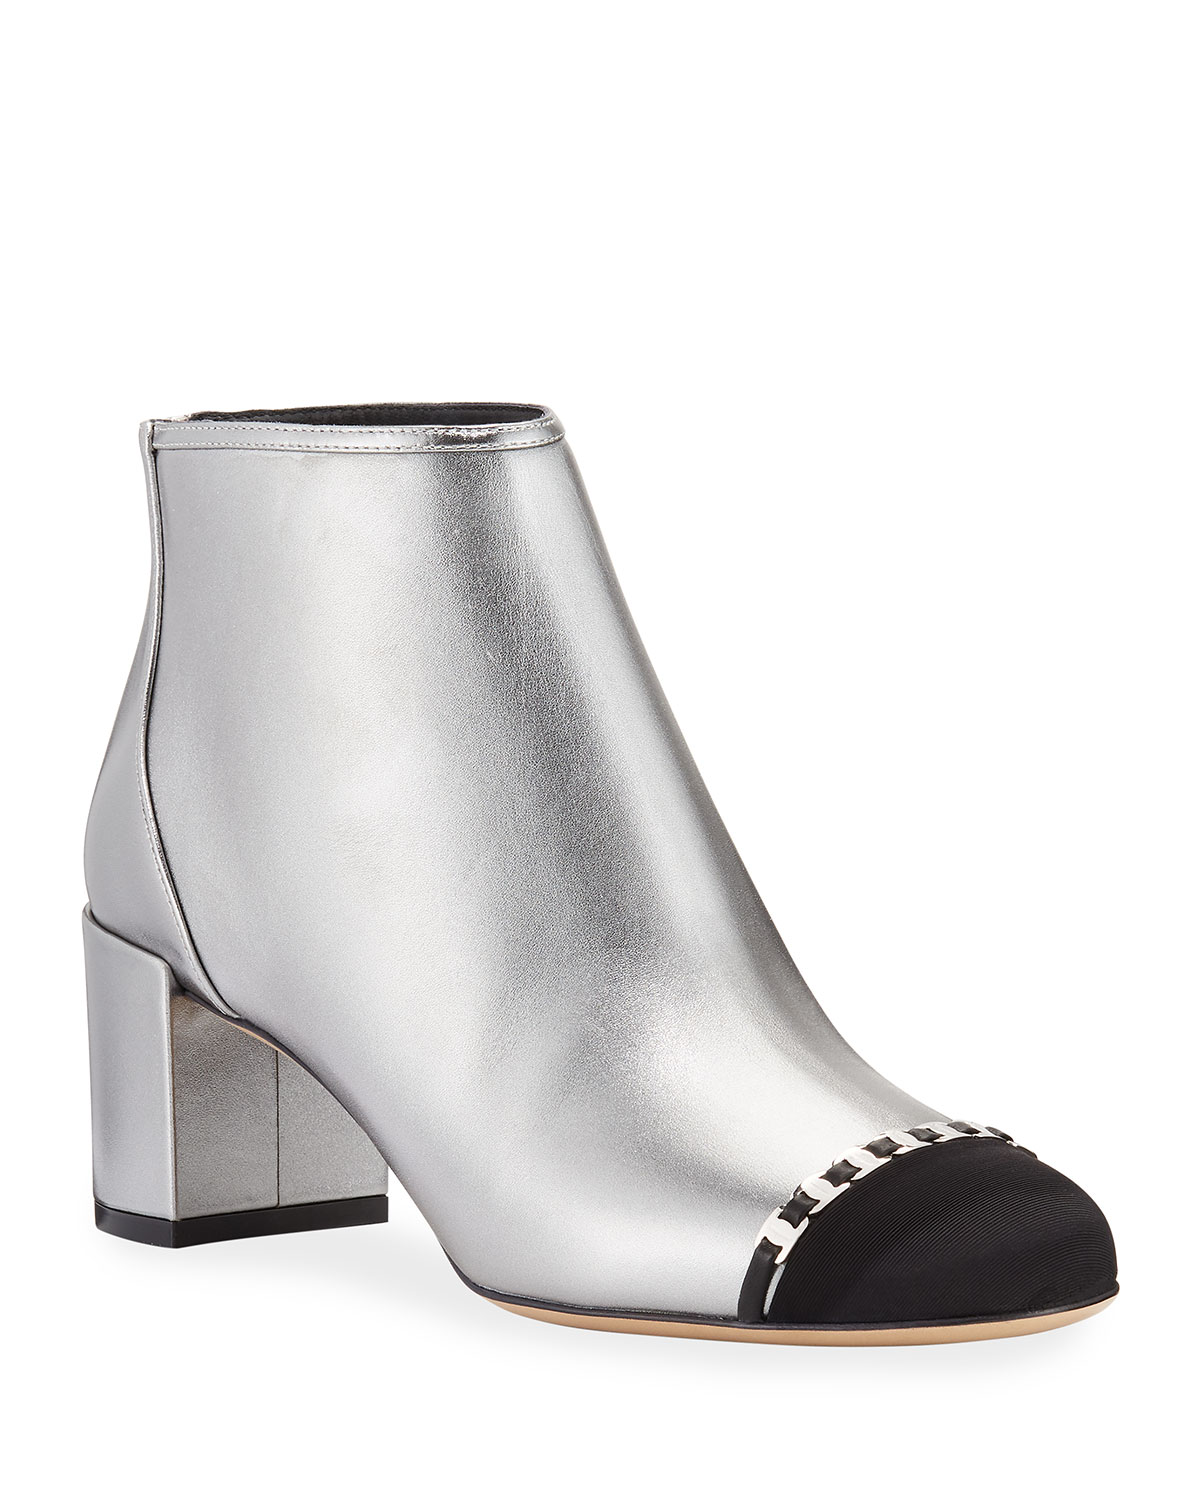 Atri 2 Cap-Toe Mini Buckles Metallic Booties